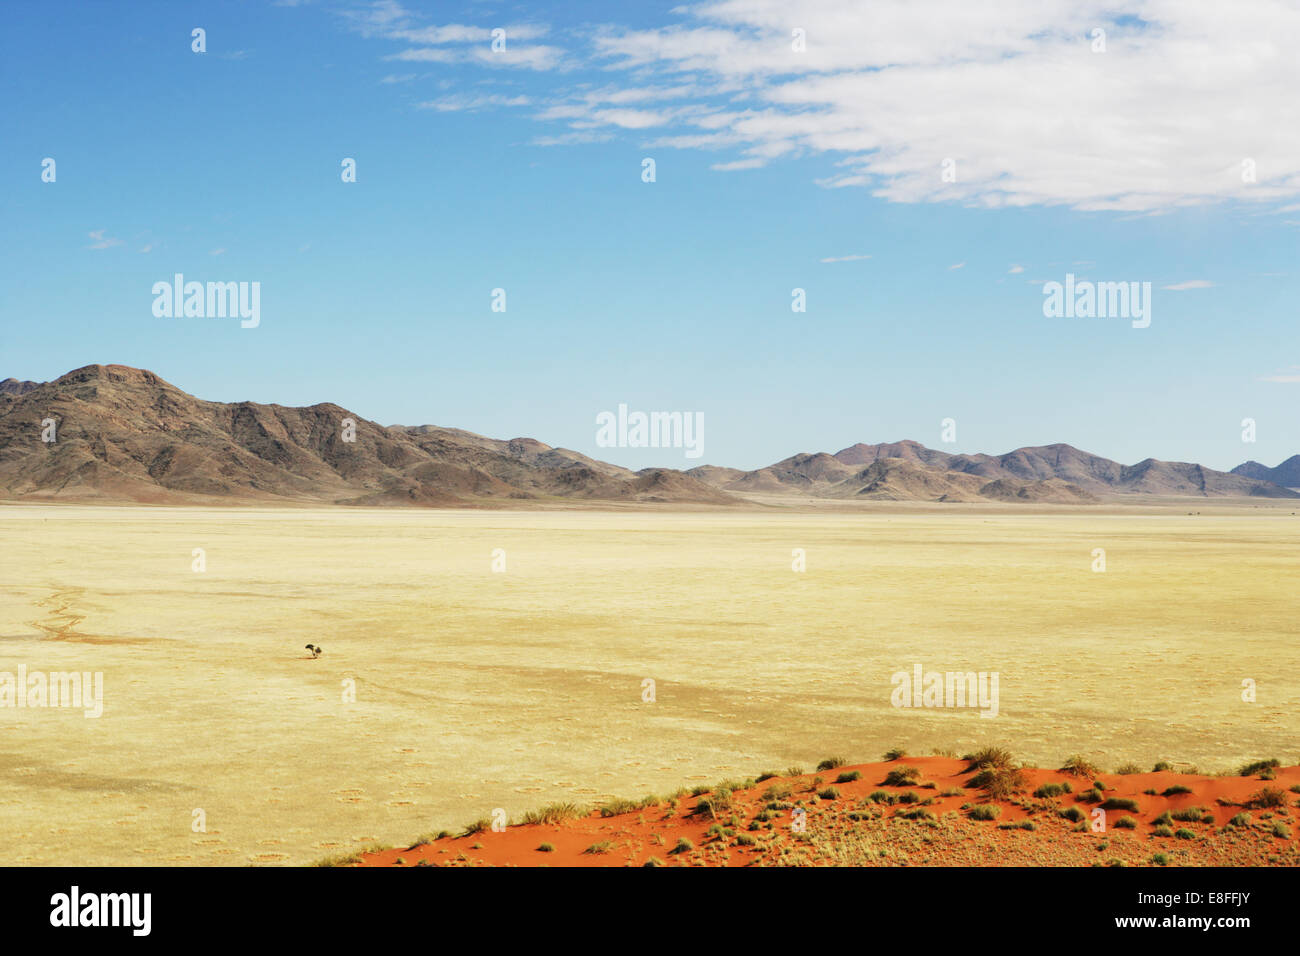 Desert and mountain landscape, Namib-Naukluft National park, Namibia - Stock Image